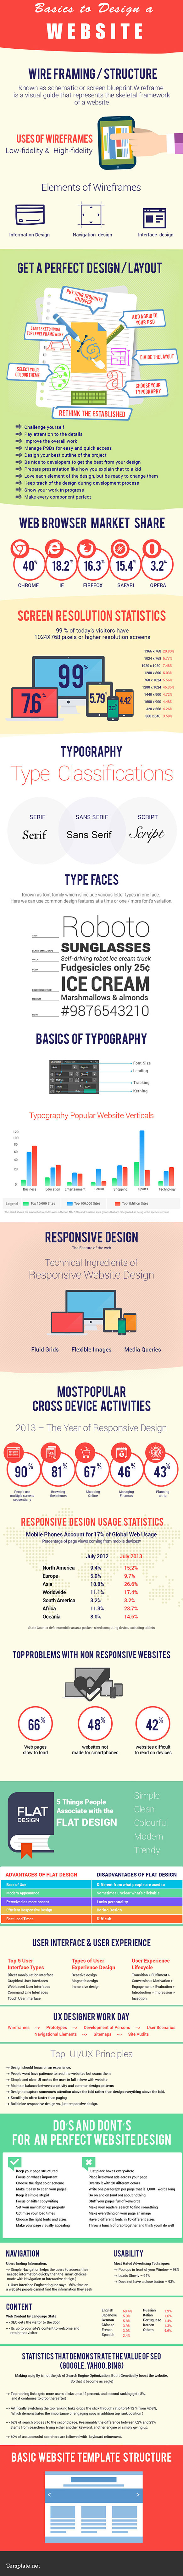 website-basics-20-do_s-and-don_ts-for-a-perfect-website